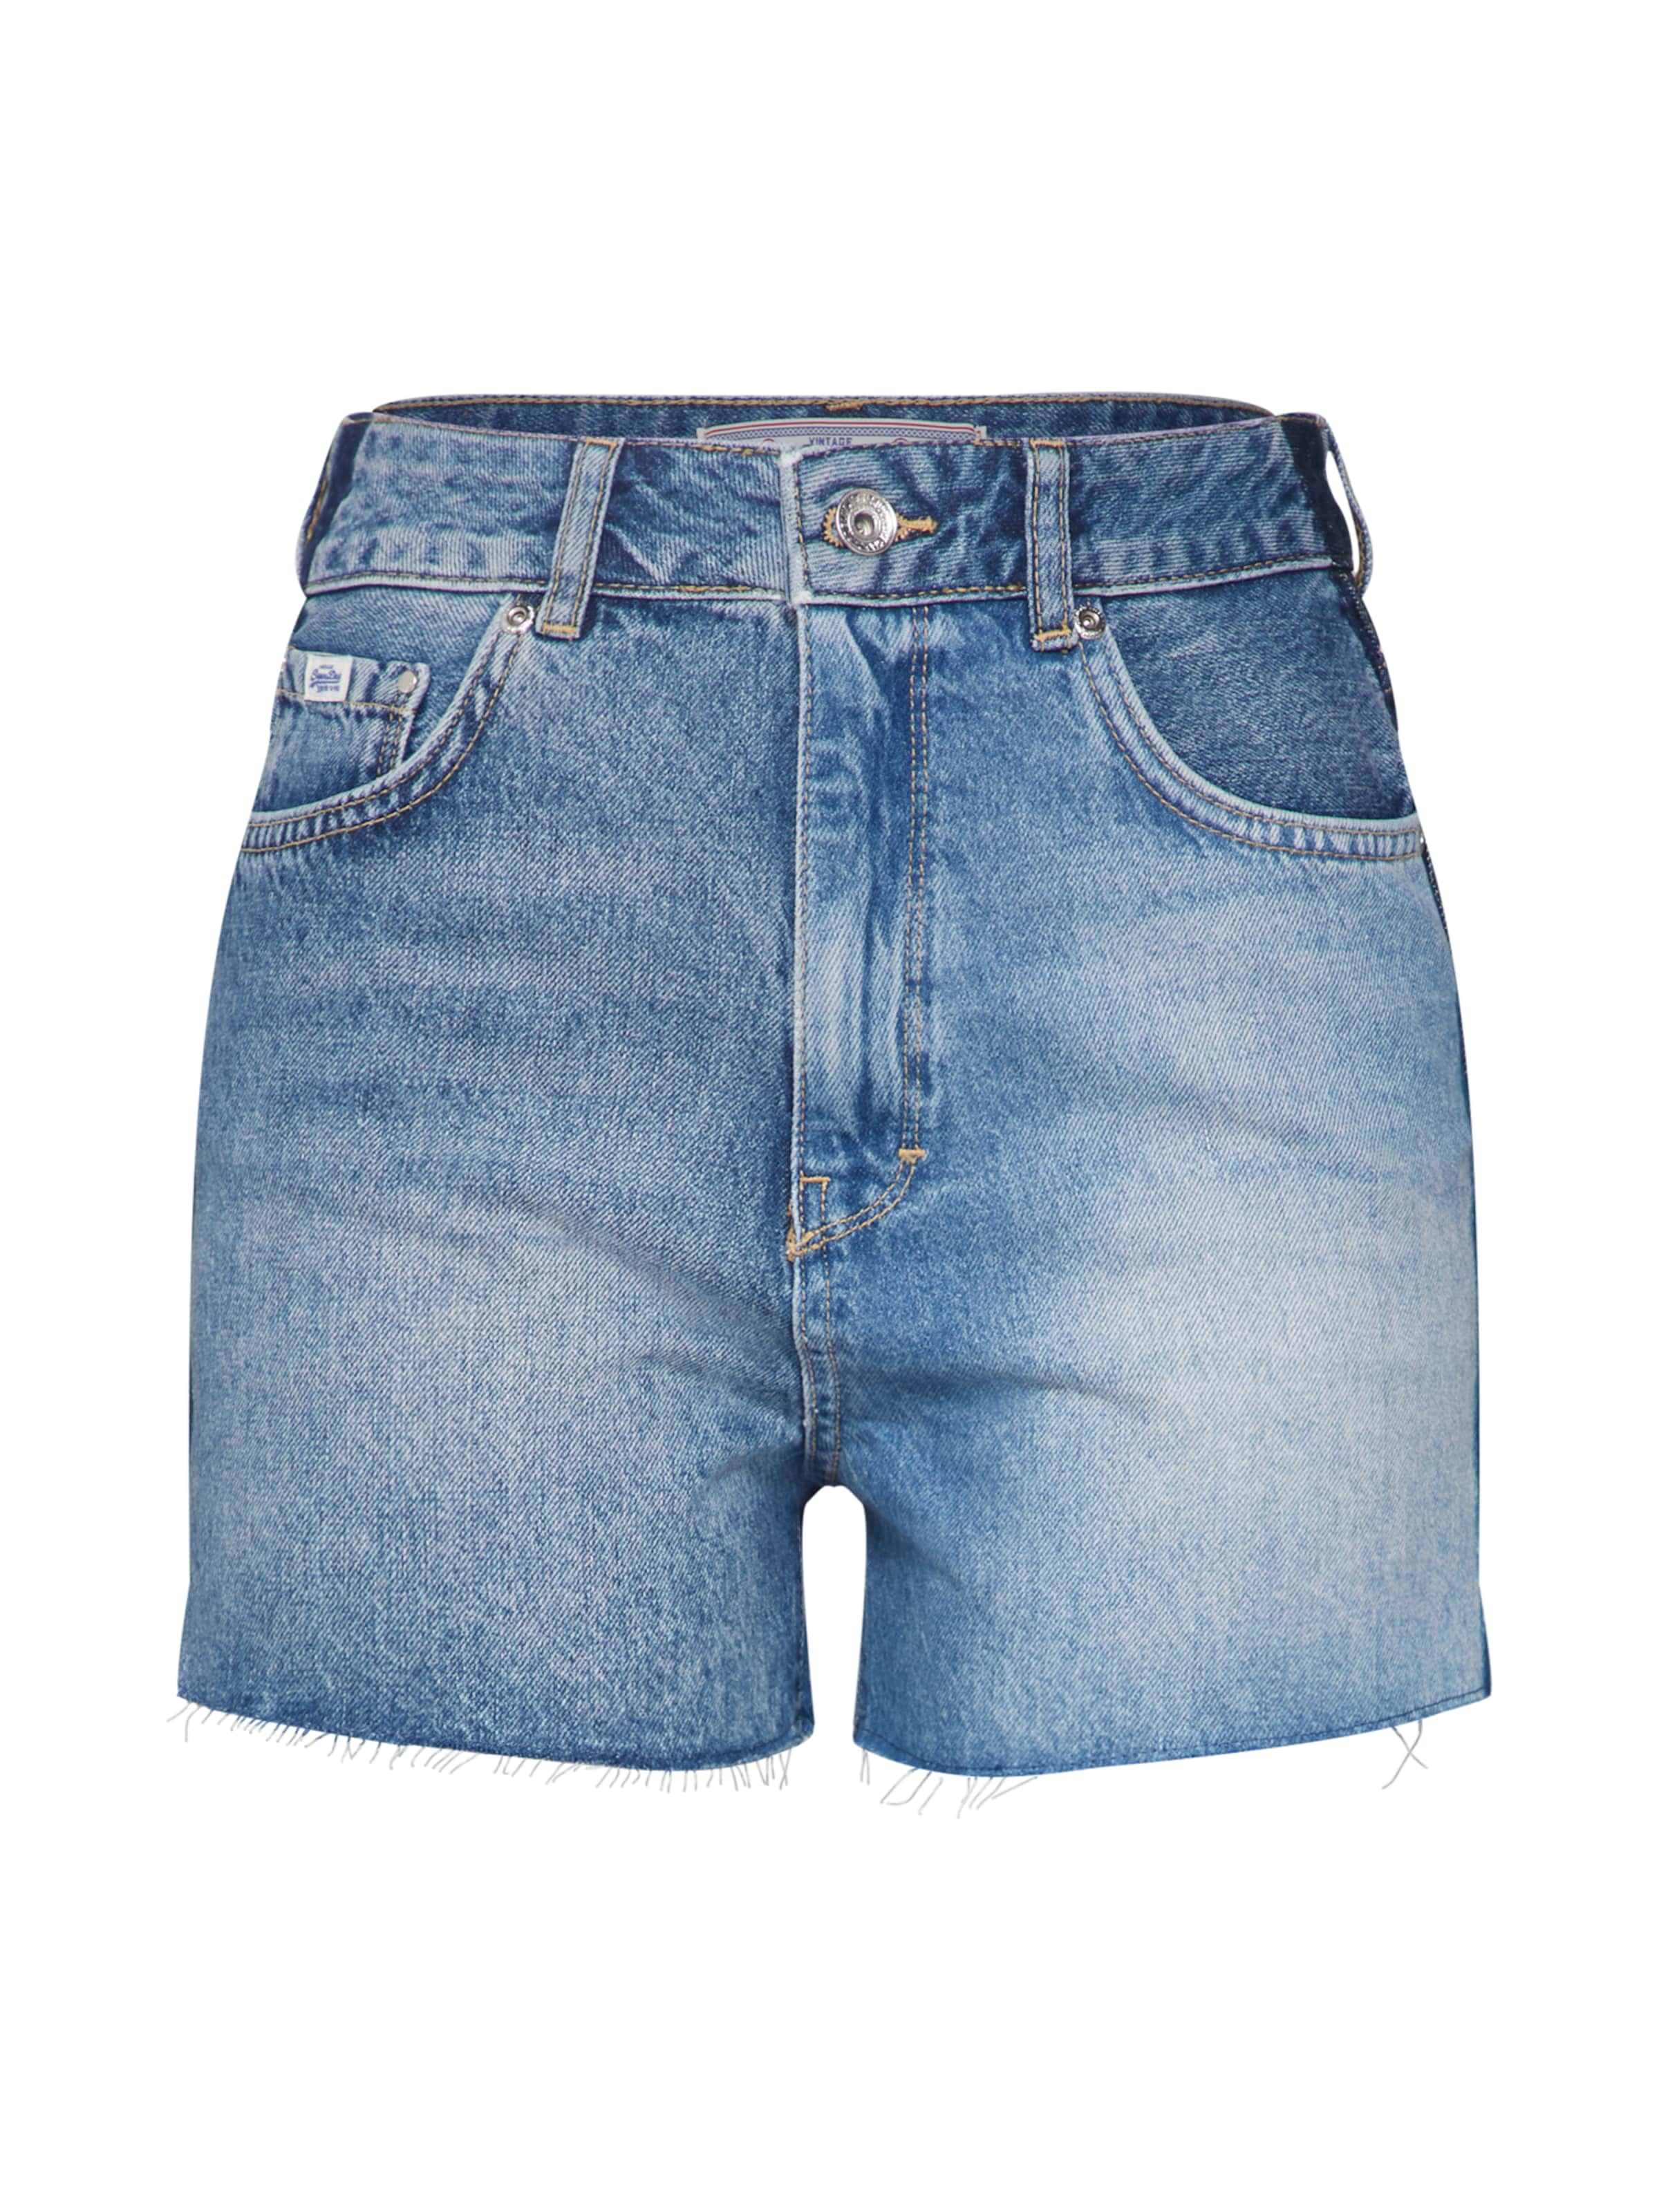 In In Denim Shorts Superdry Superdry In Shorts Superdry Shorts Denim Blue Blue c4RLSq5Aj3